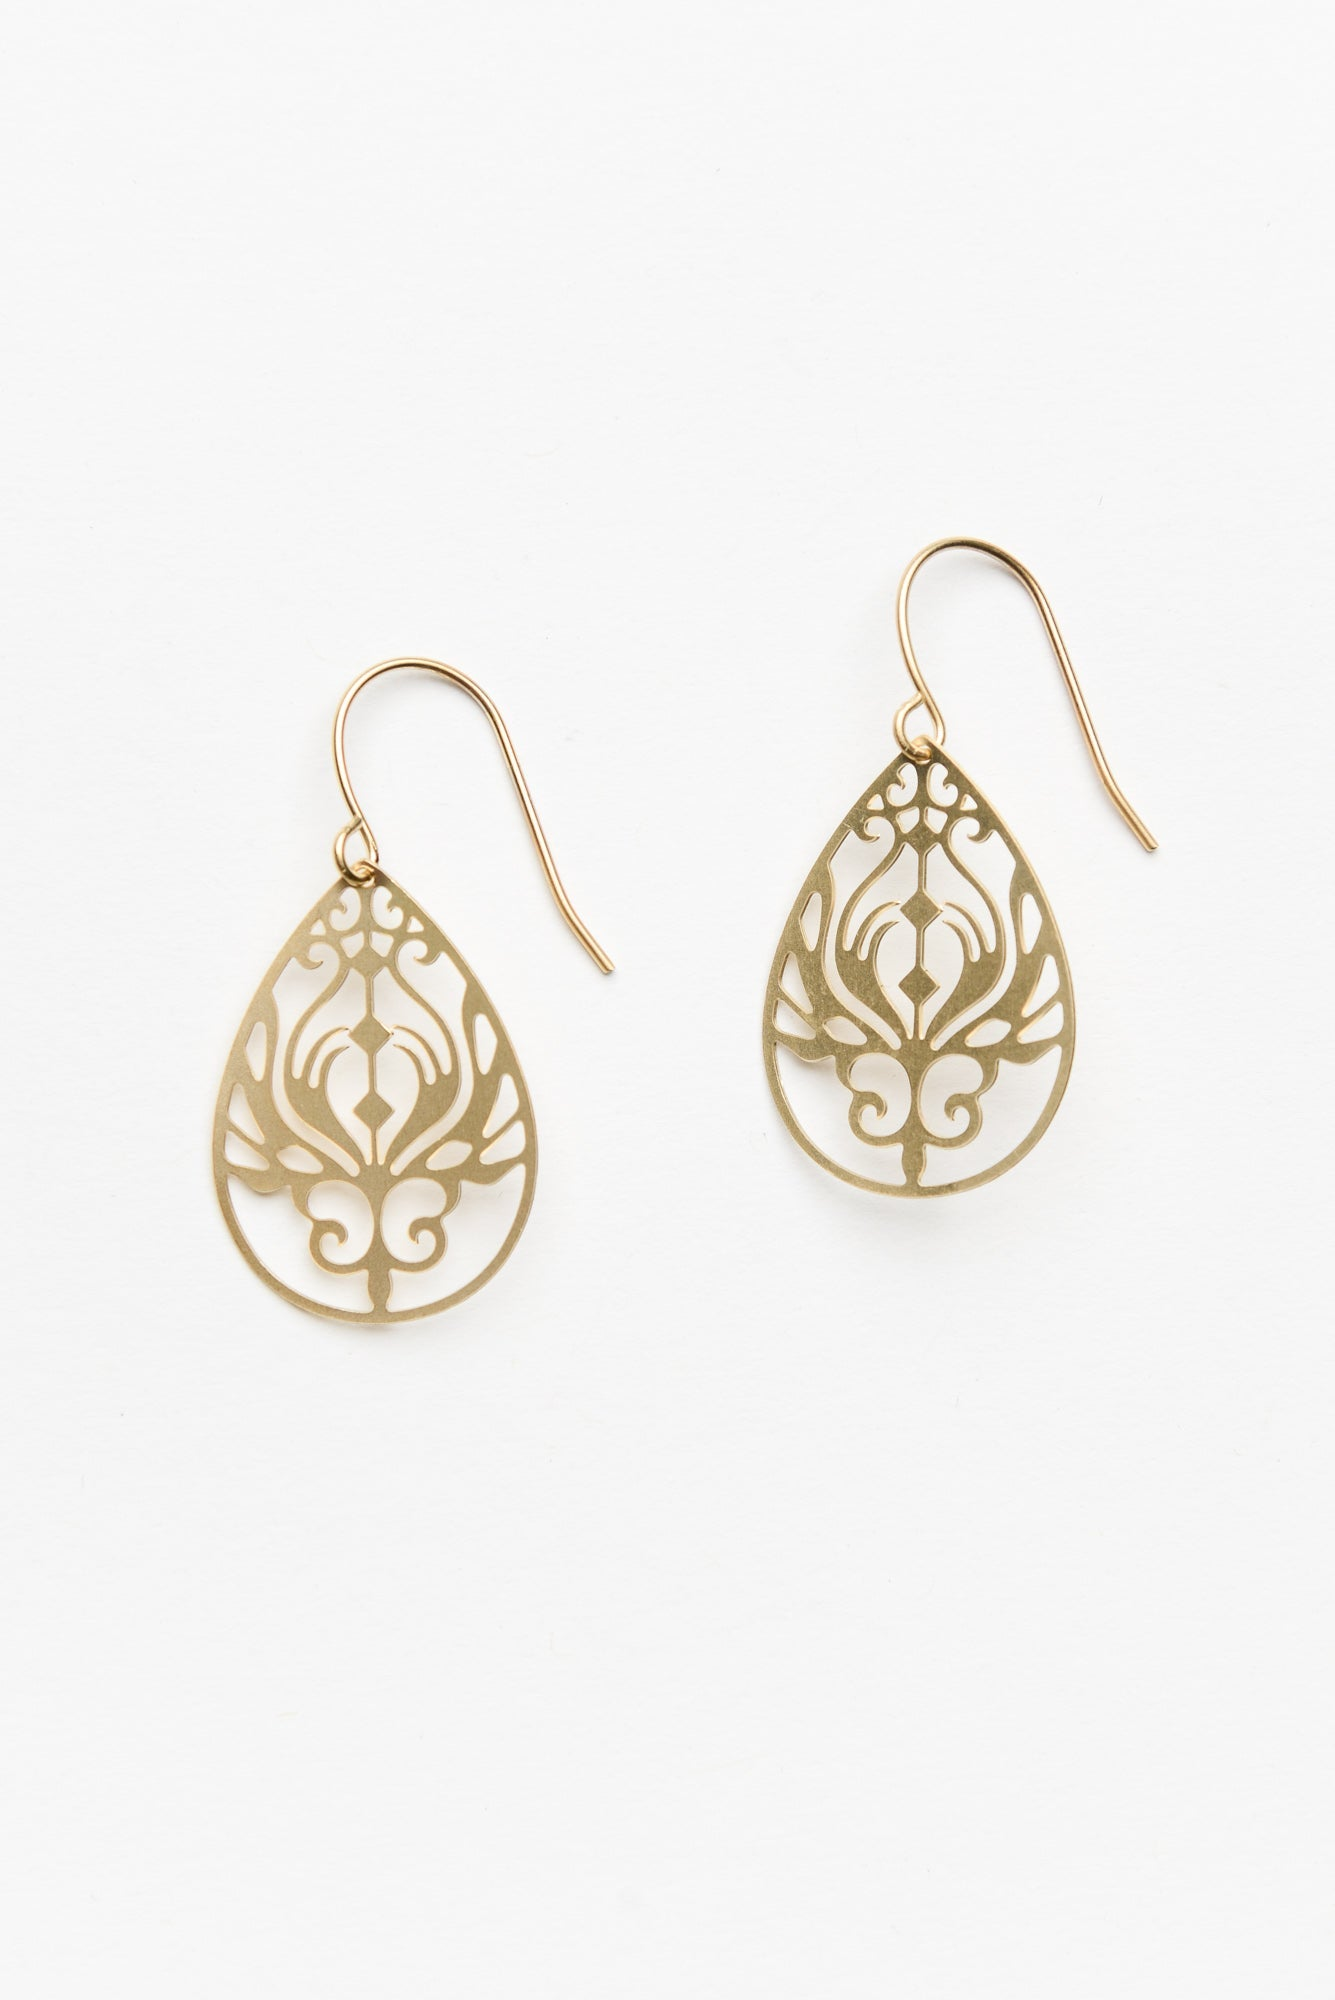 Gold Mini Baroque Filigree Earrings - Tiger Tree - Blue Bungalow Online